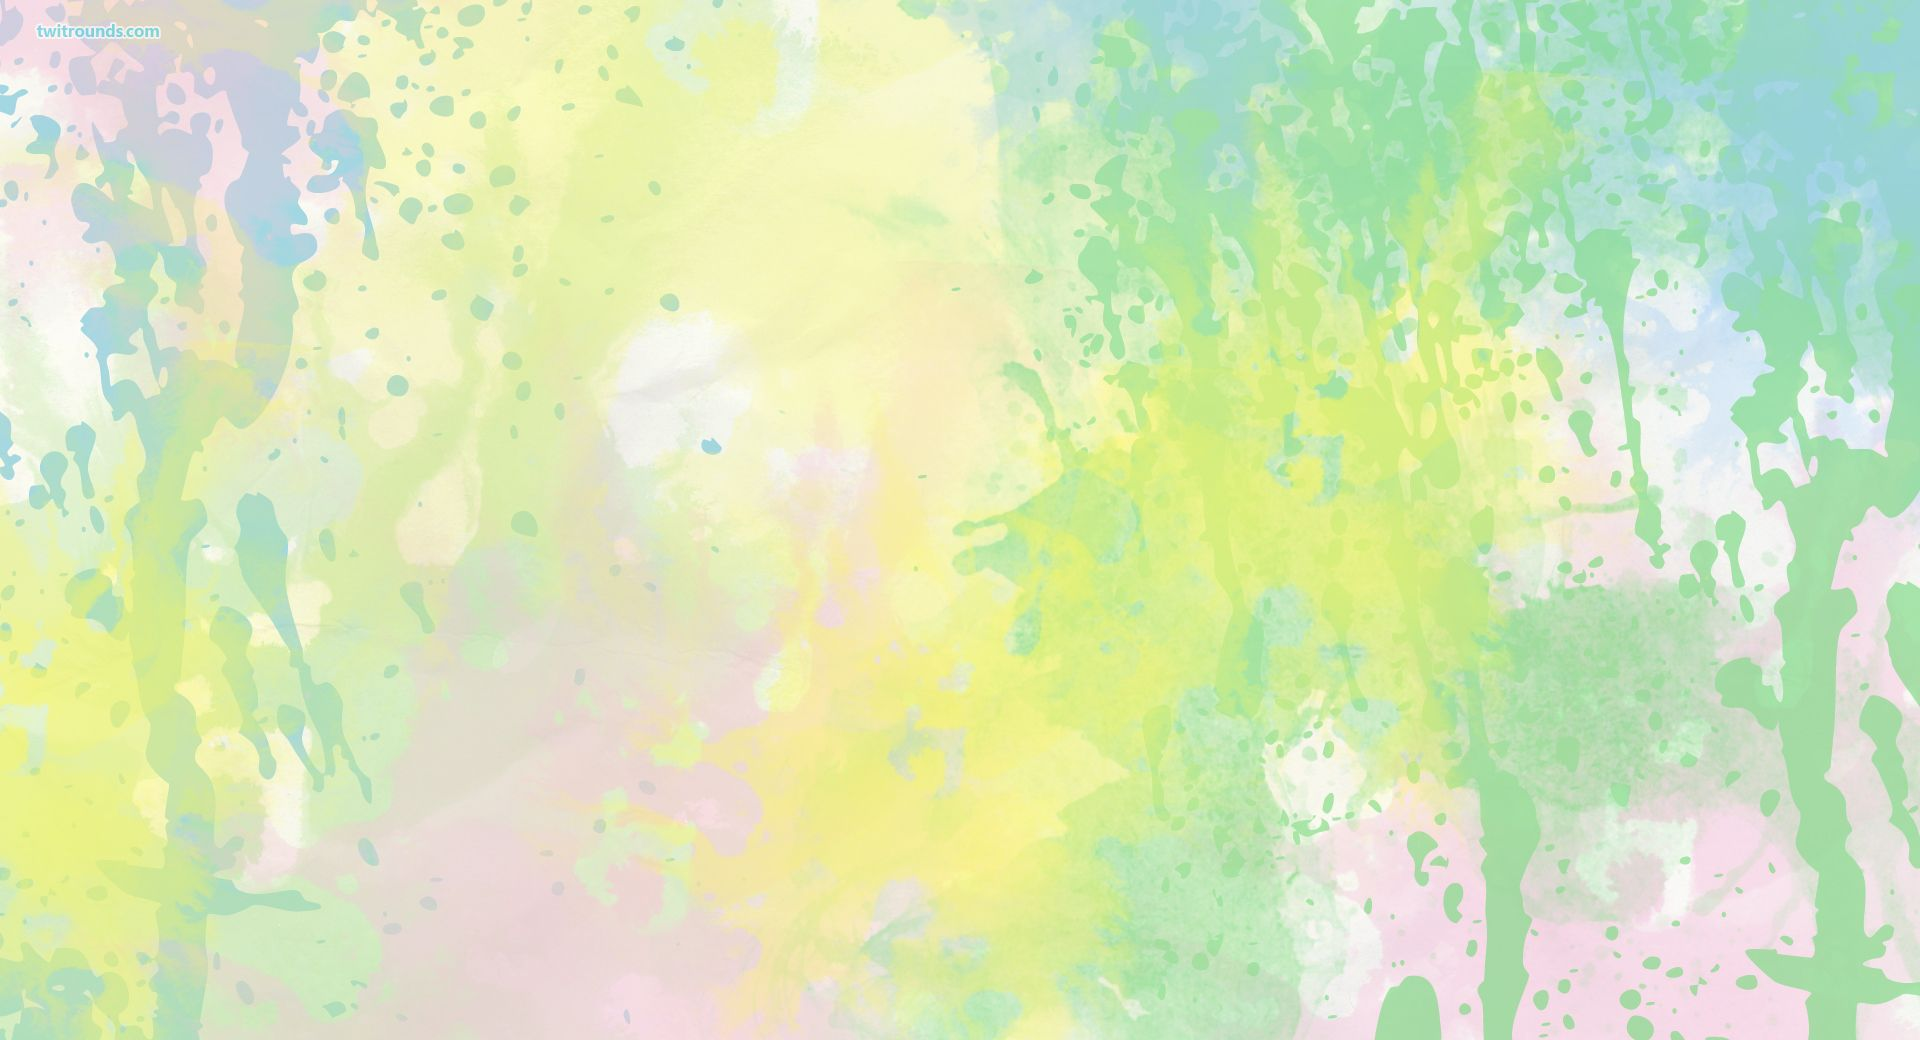 Desktop Wallpaper Abstract Watercolor Free 3367 Wallpaper